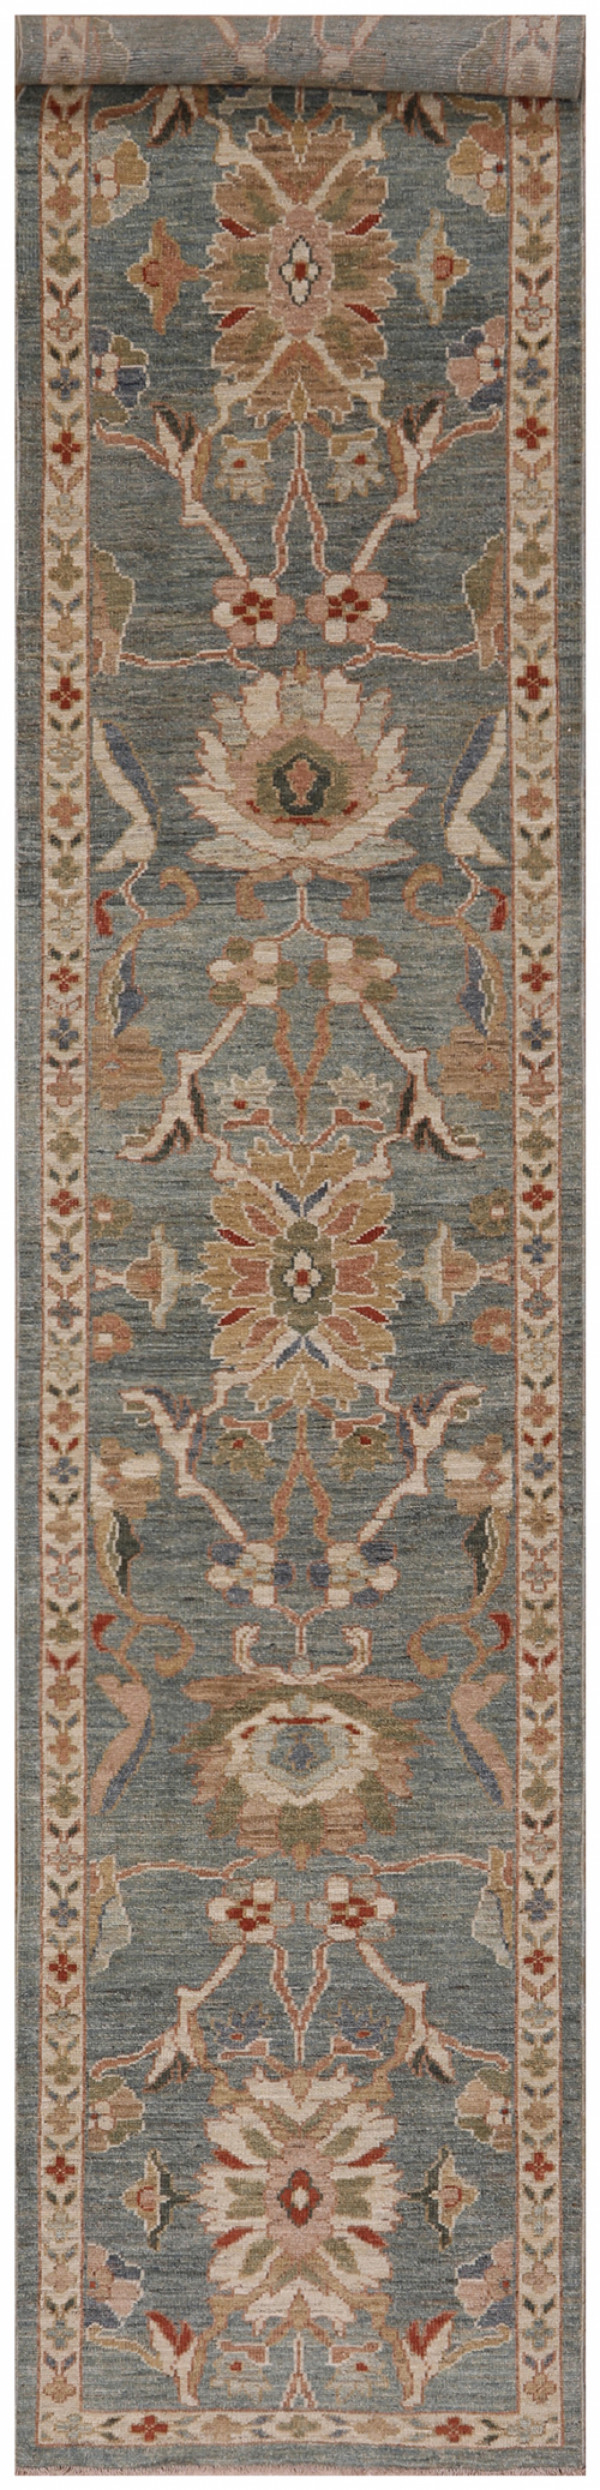 #42022 Sultanabad Persian Rug